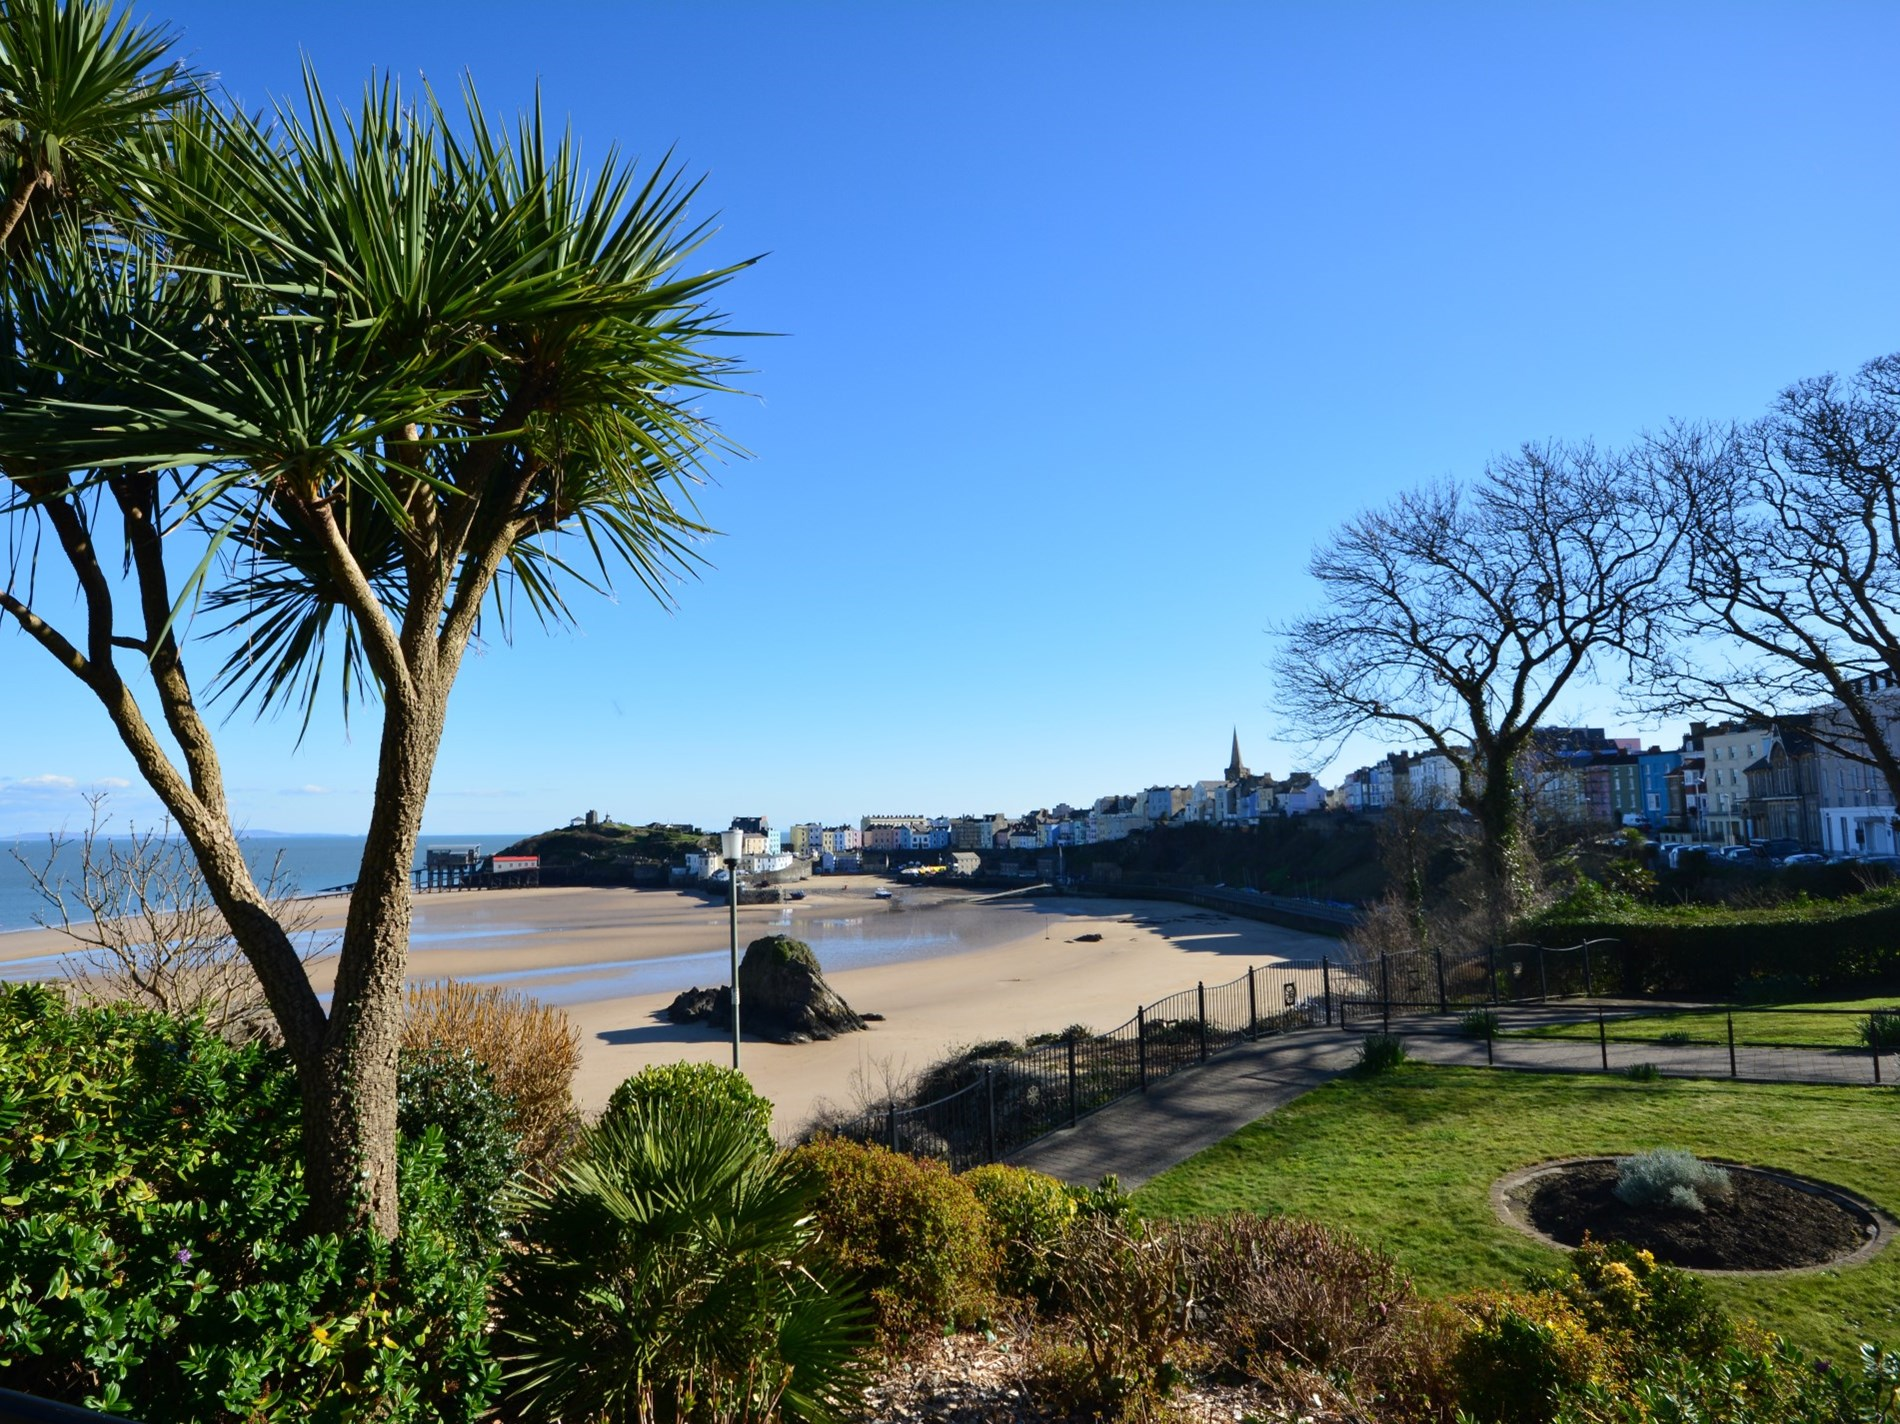 5 Bedroom Cottage in Tenby, Mid Wales